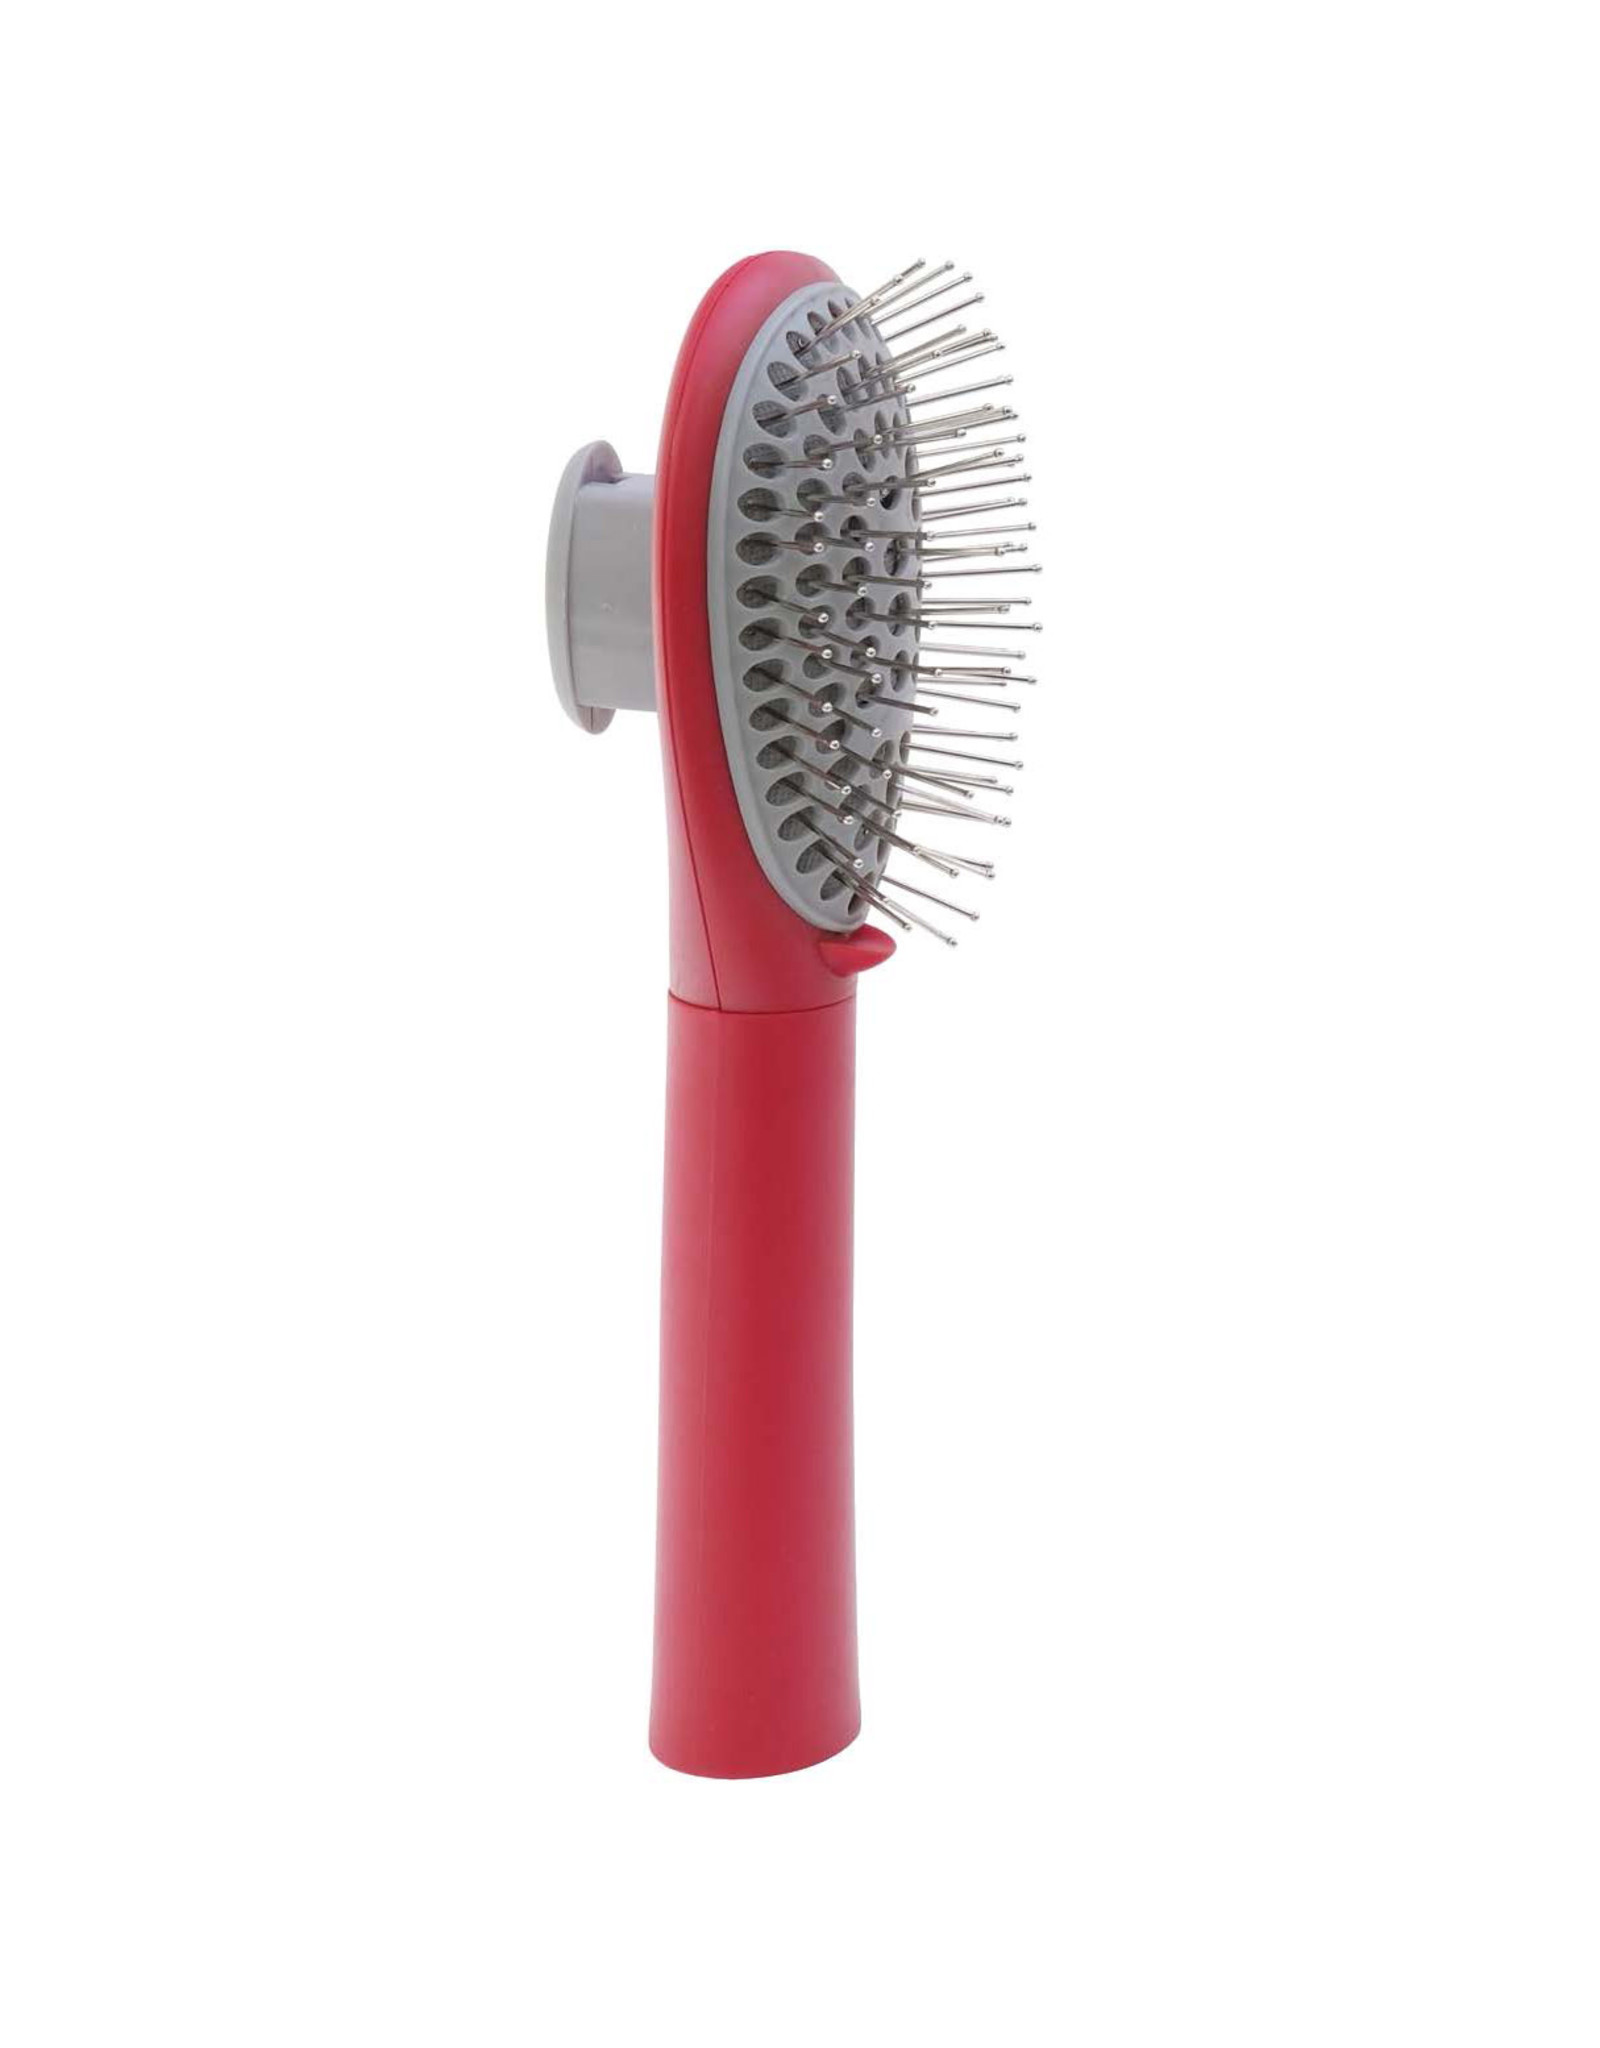 Le Salon LeSalon Self-Cleaning Pin Brush for Dogs